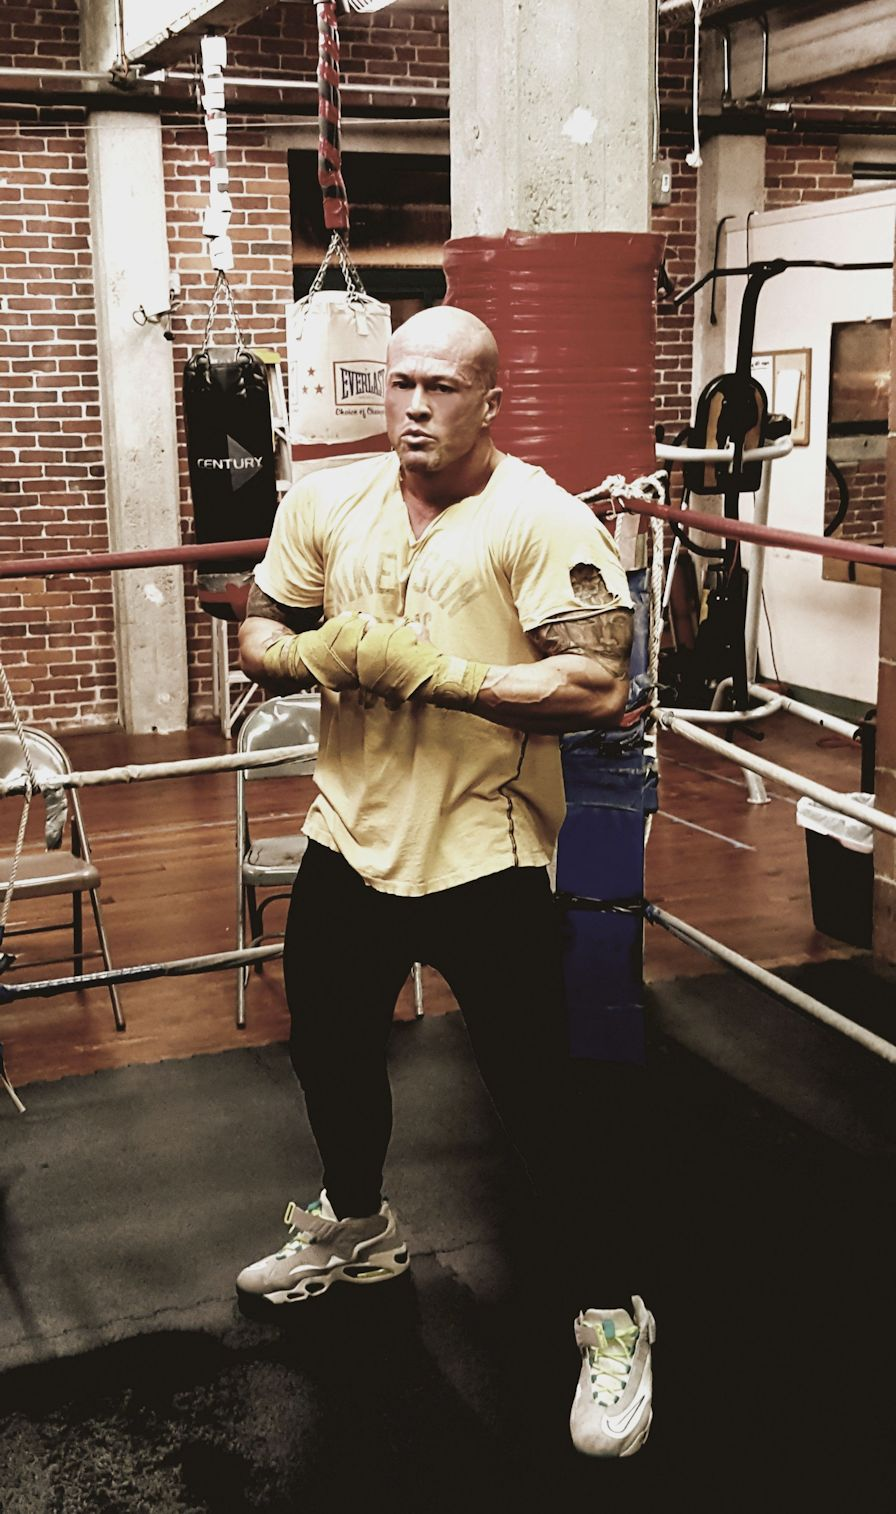 Tattooed Physique Model & Actor John Joseph Quinlan Film Series Training in Mike Tyson Boxing 2016 #JohnQuinlan